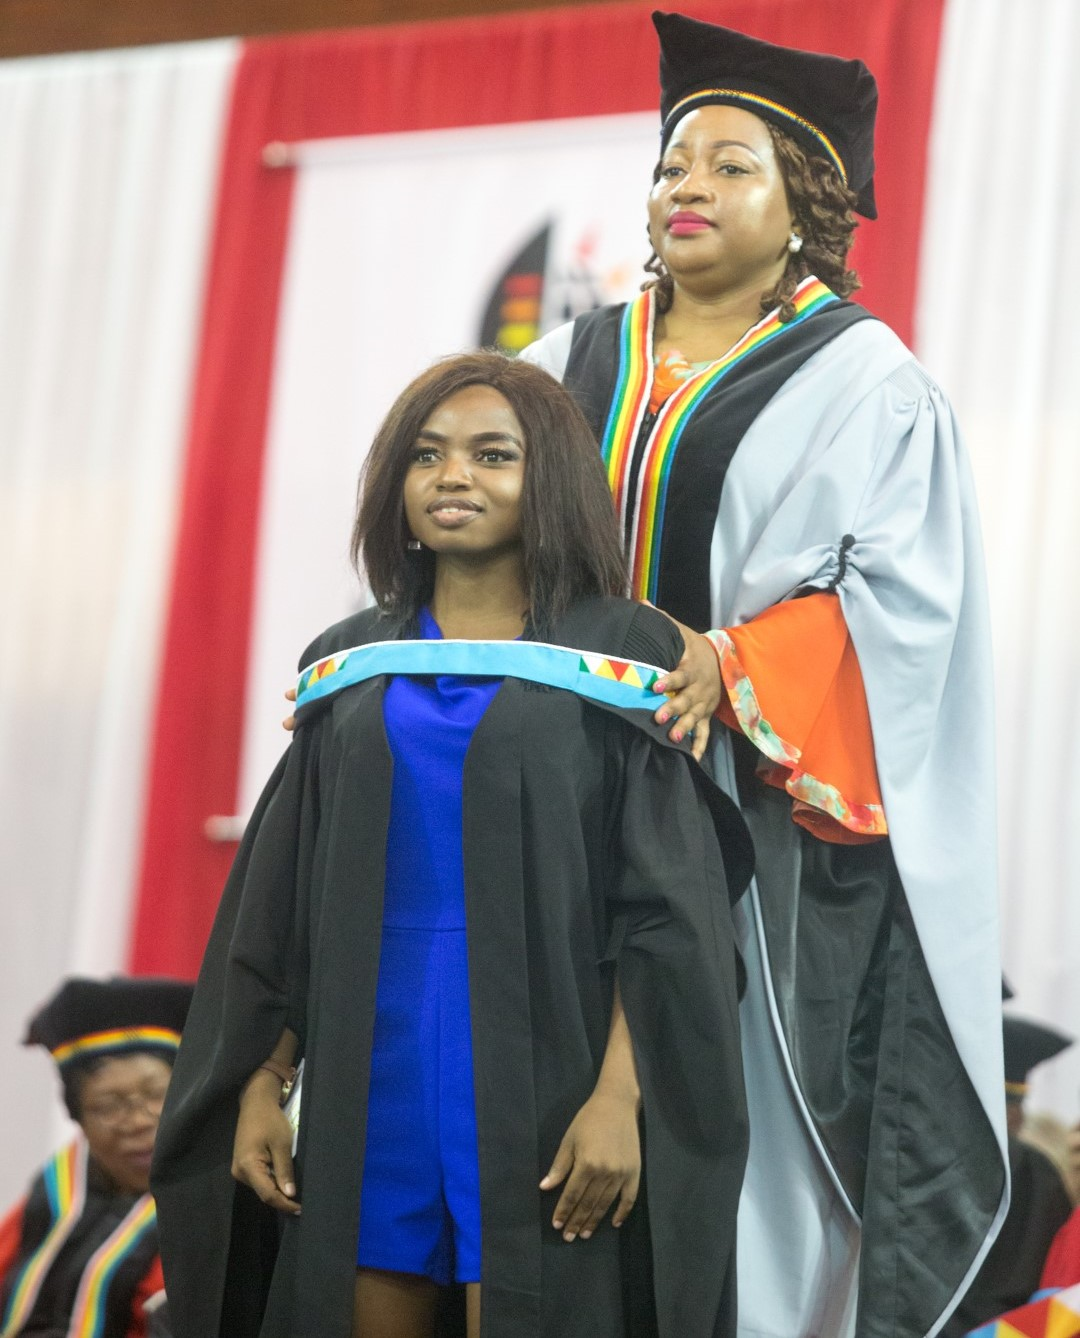 Ms Nomfundo Zuma graduated cum laude with an Honours degree in Applied Ethnomusicology